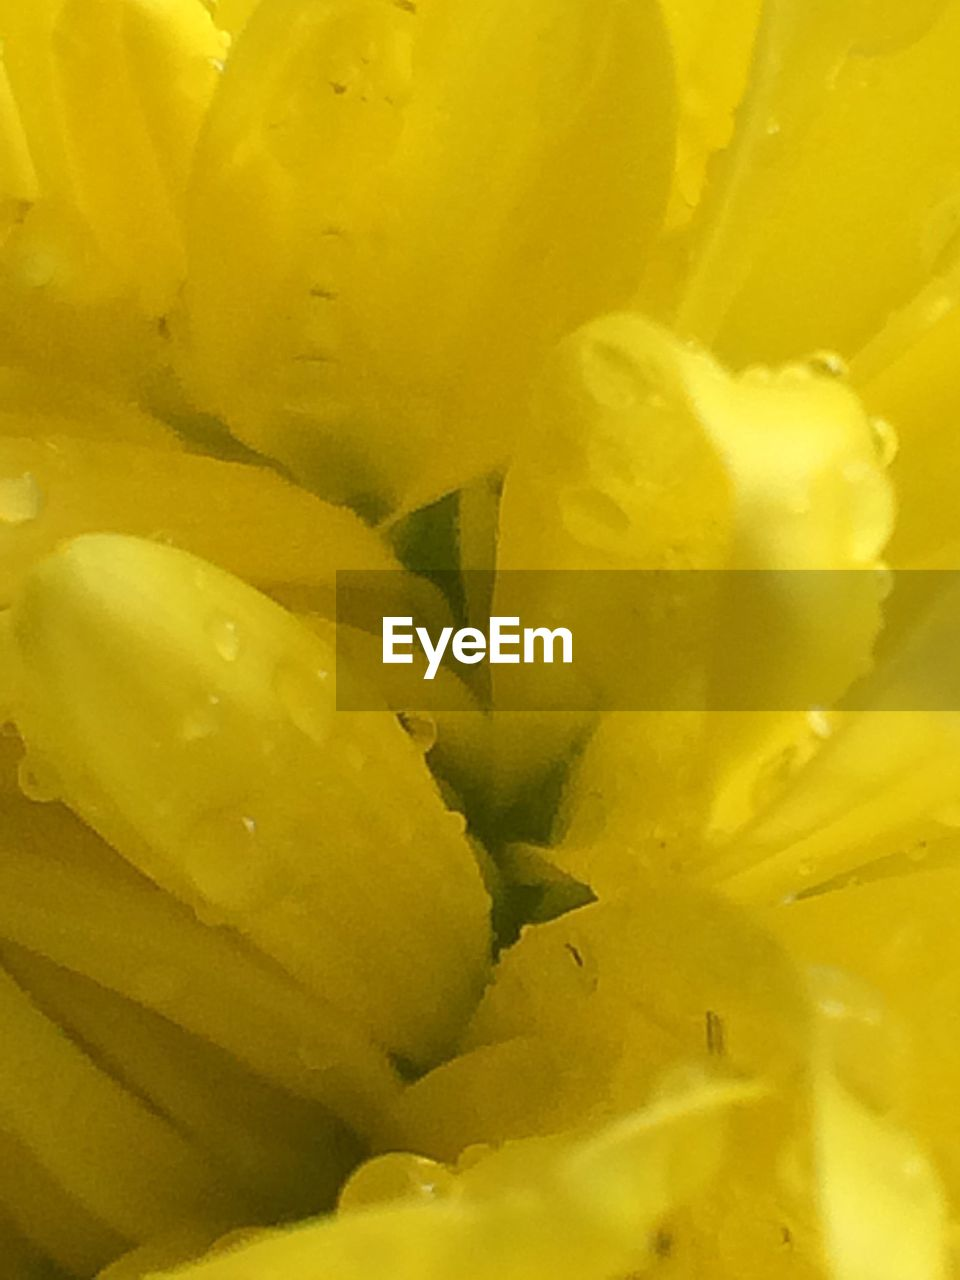 flower, full frame, backgrounds, freshness, yellow, petal, close-up, no people, food, nature, growth, fragility, plant, flower head, beauty in nature, day